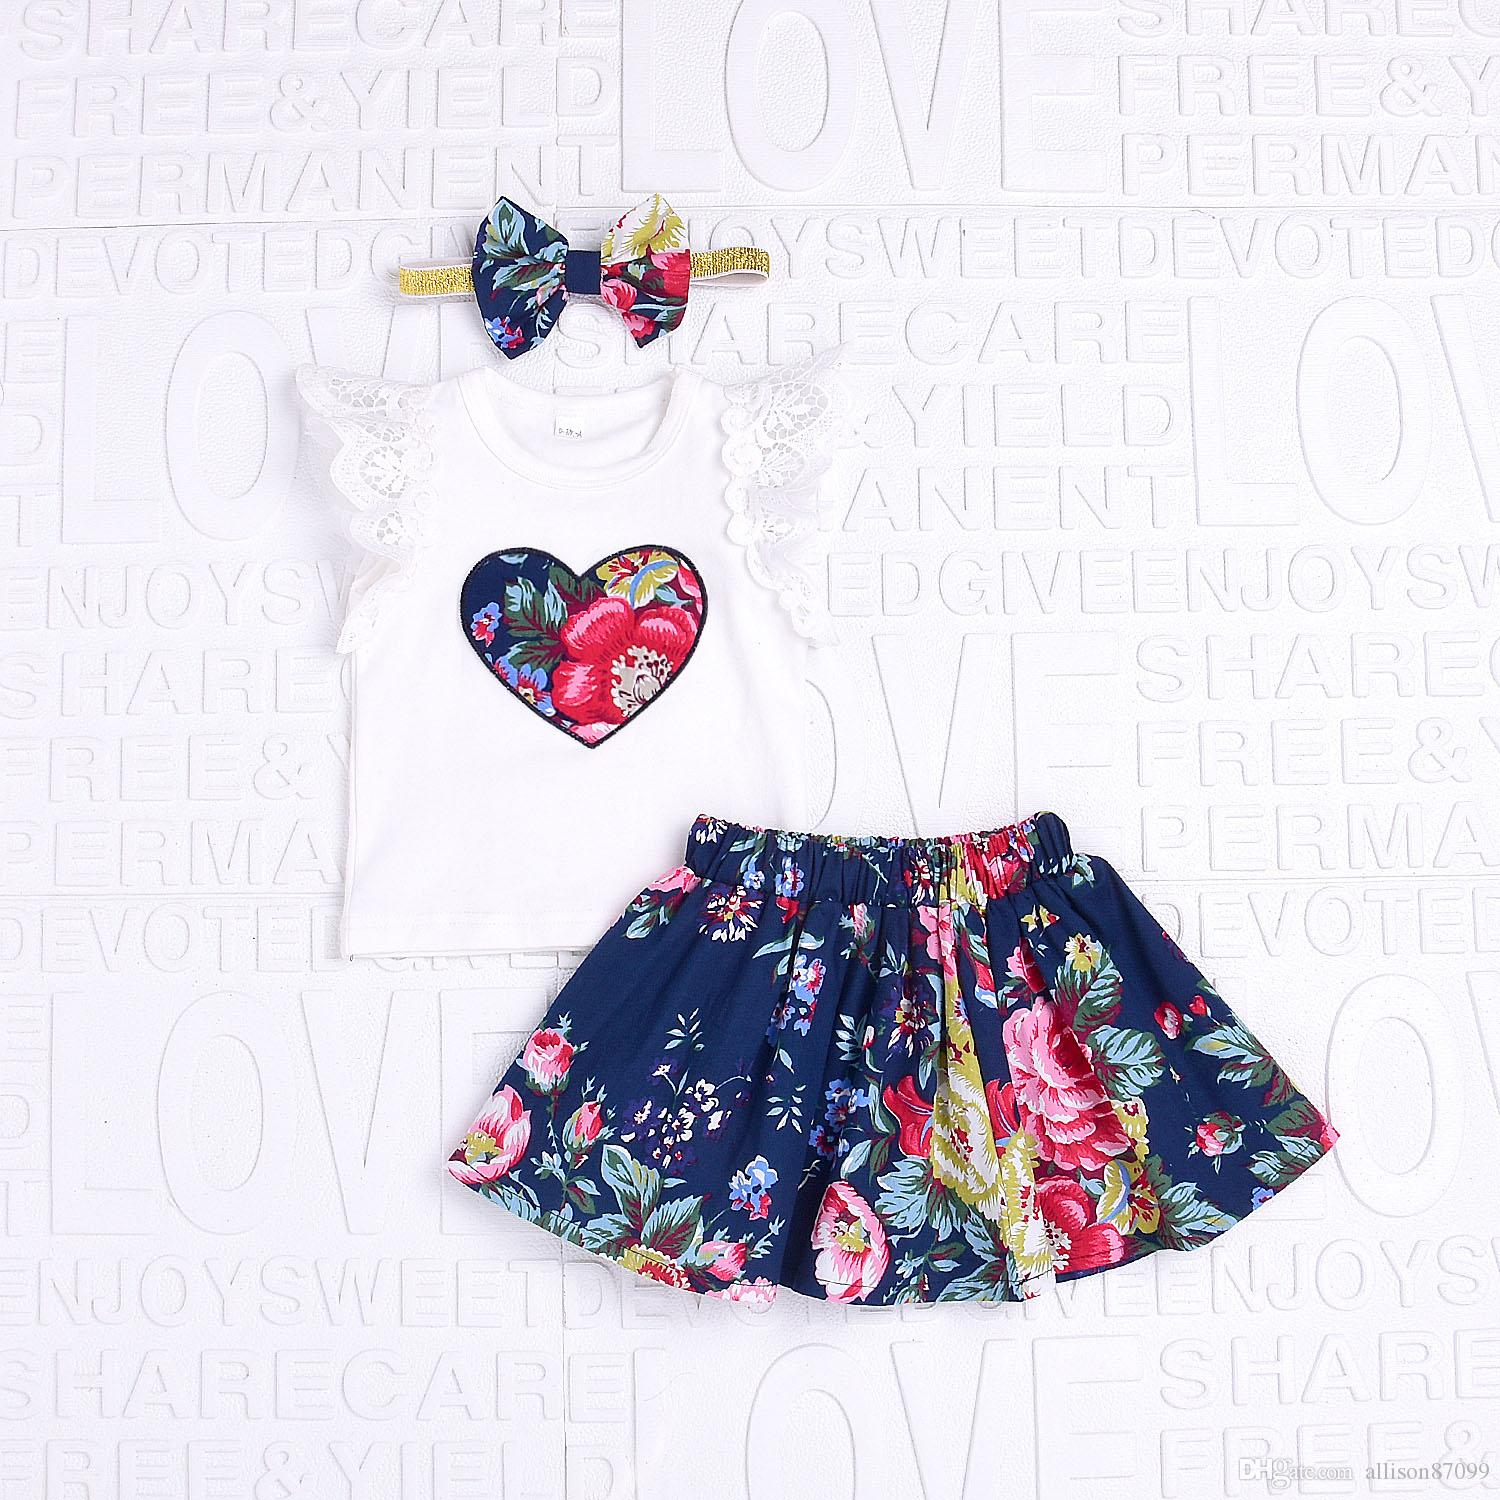 c564fc5682e 2019 2019 Baby Girl Clothing Ins Outfits Retro Floral Romper With Heart  Short Lace Sleeve + Skirt With Bow Headband Summer New Style From  Allison87099